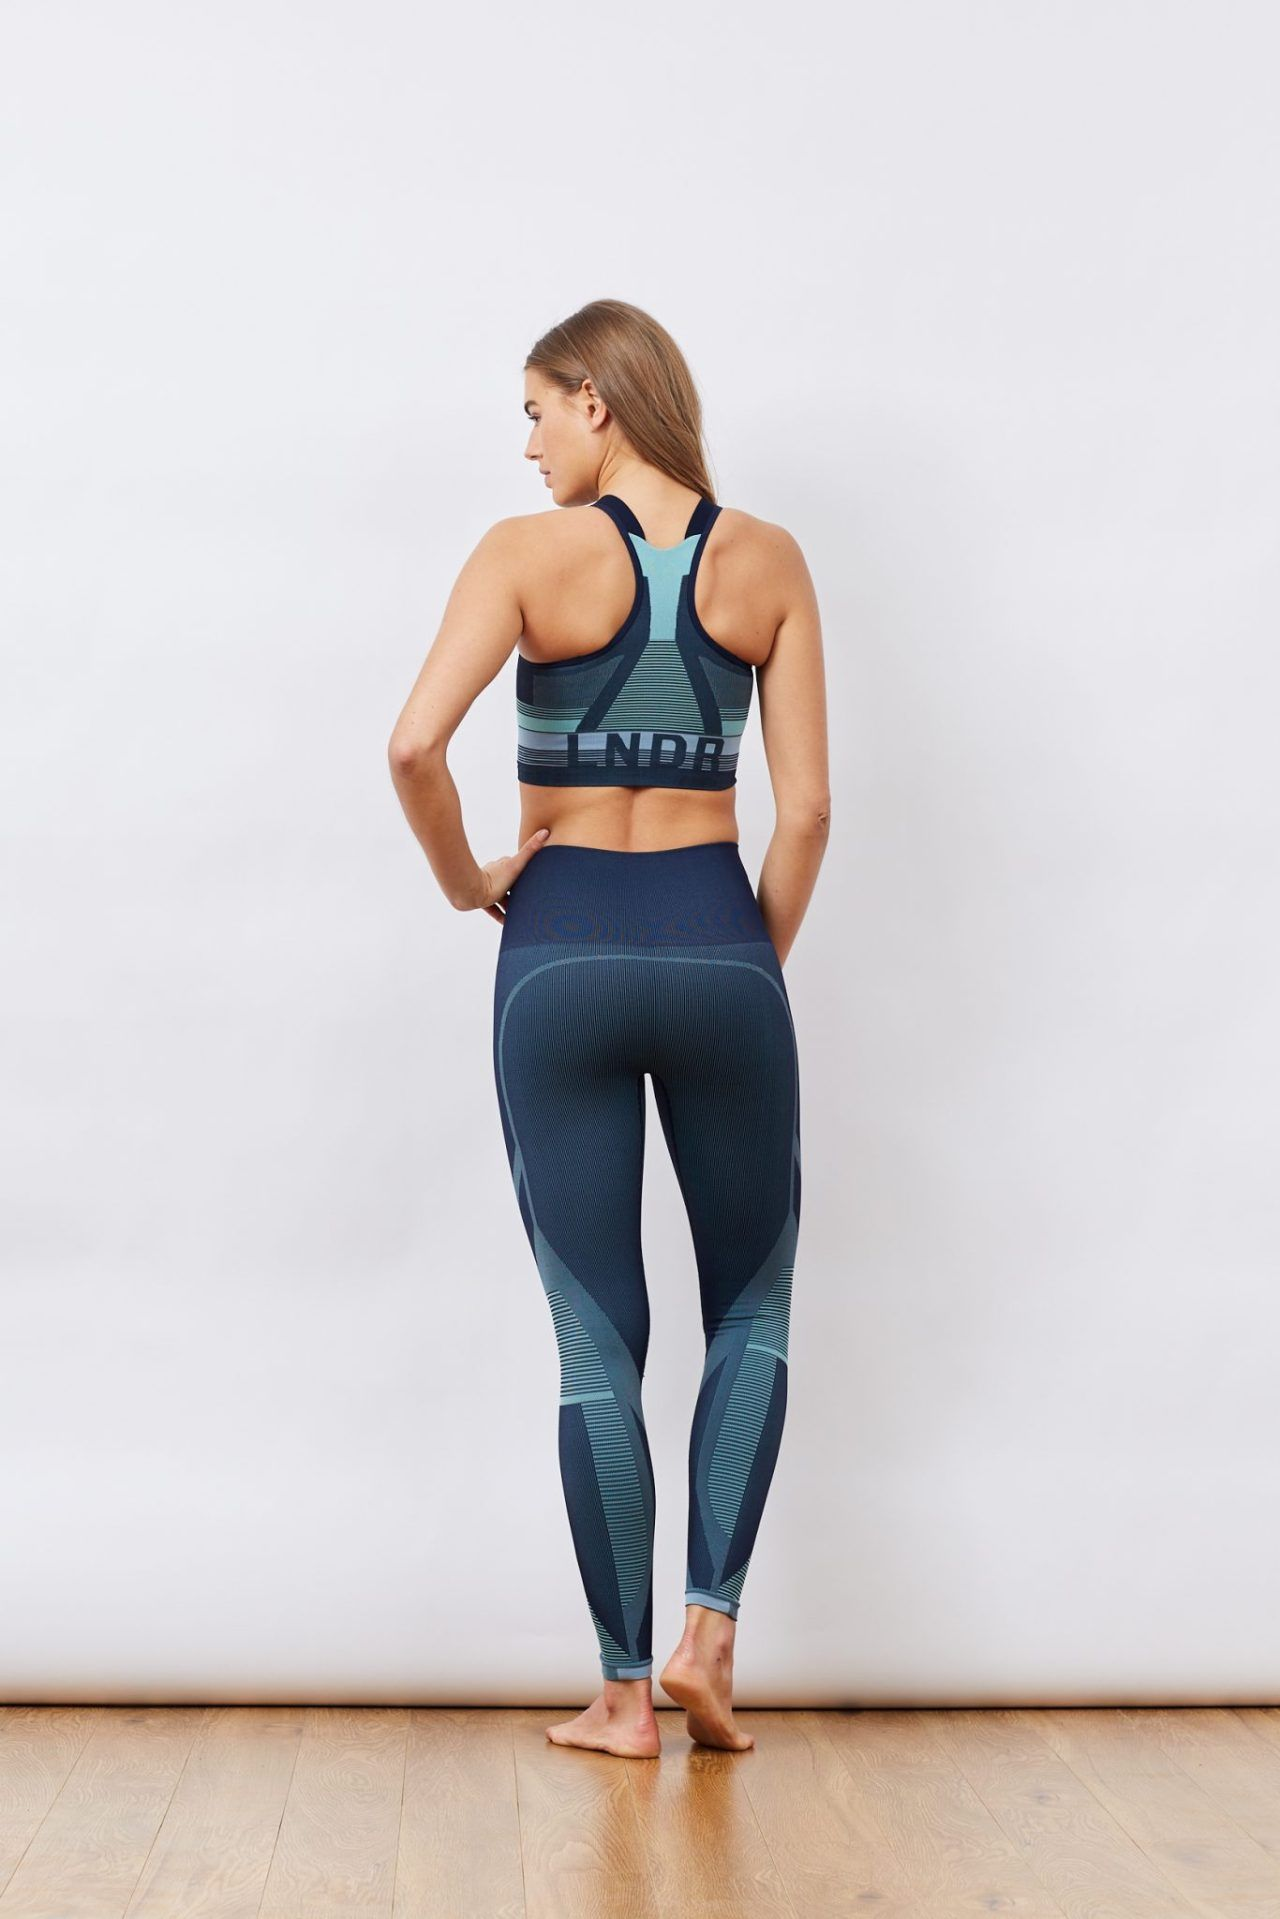 bced02a5ef2c33 LNDR Spectrum Leggings   Fashercise, activewear for the stylishly fit!